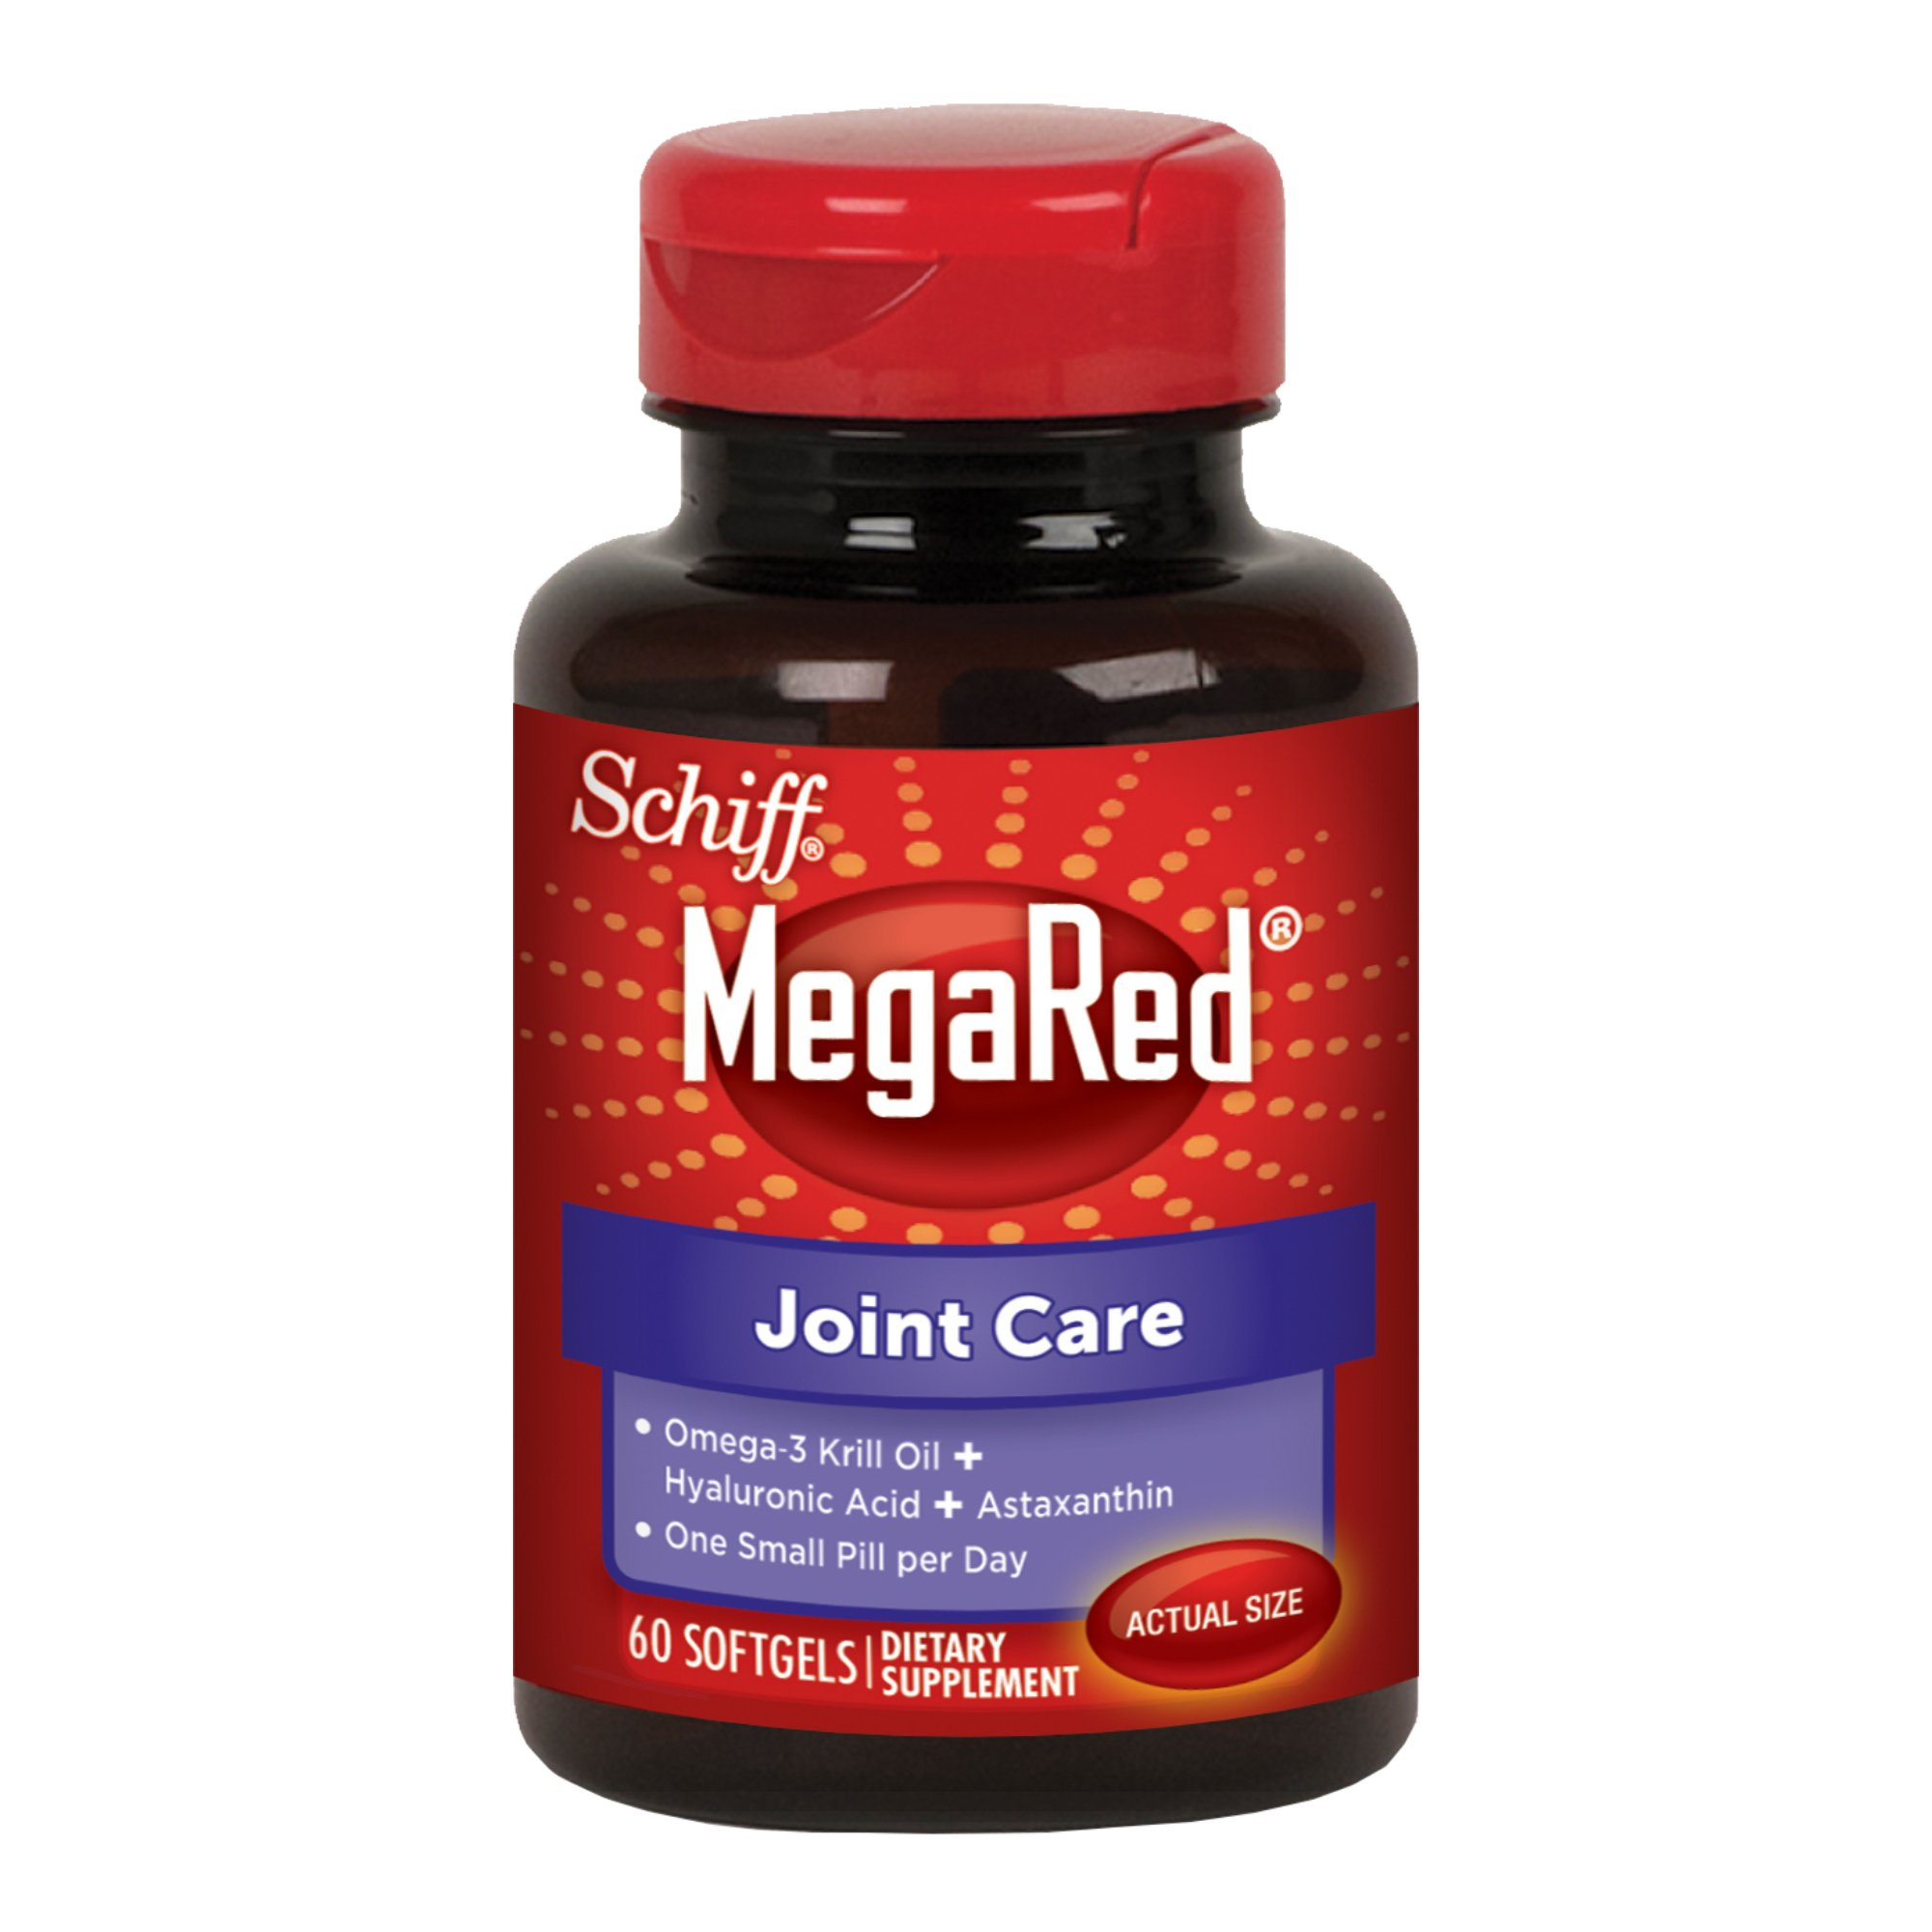 MegaRed Joint Care, 60 softgels -  Omega 3 Krill Oil, Hyaluronic Acid and Astaxanthin Supplement